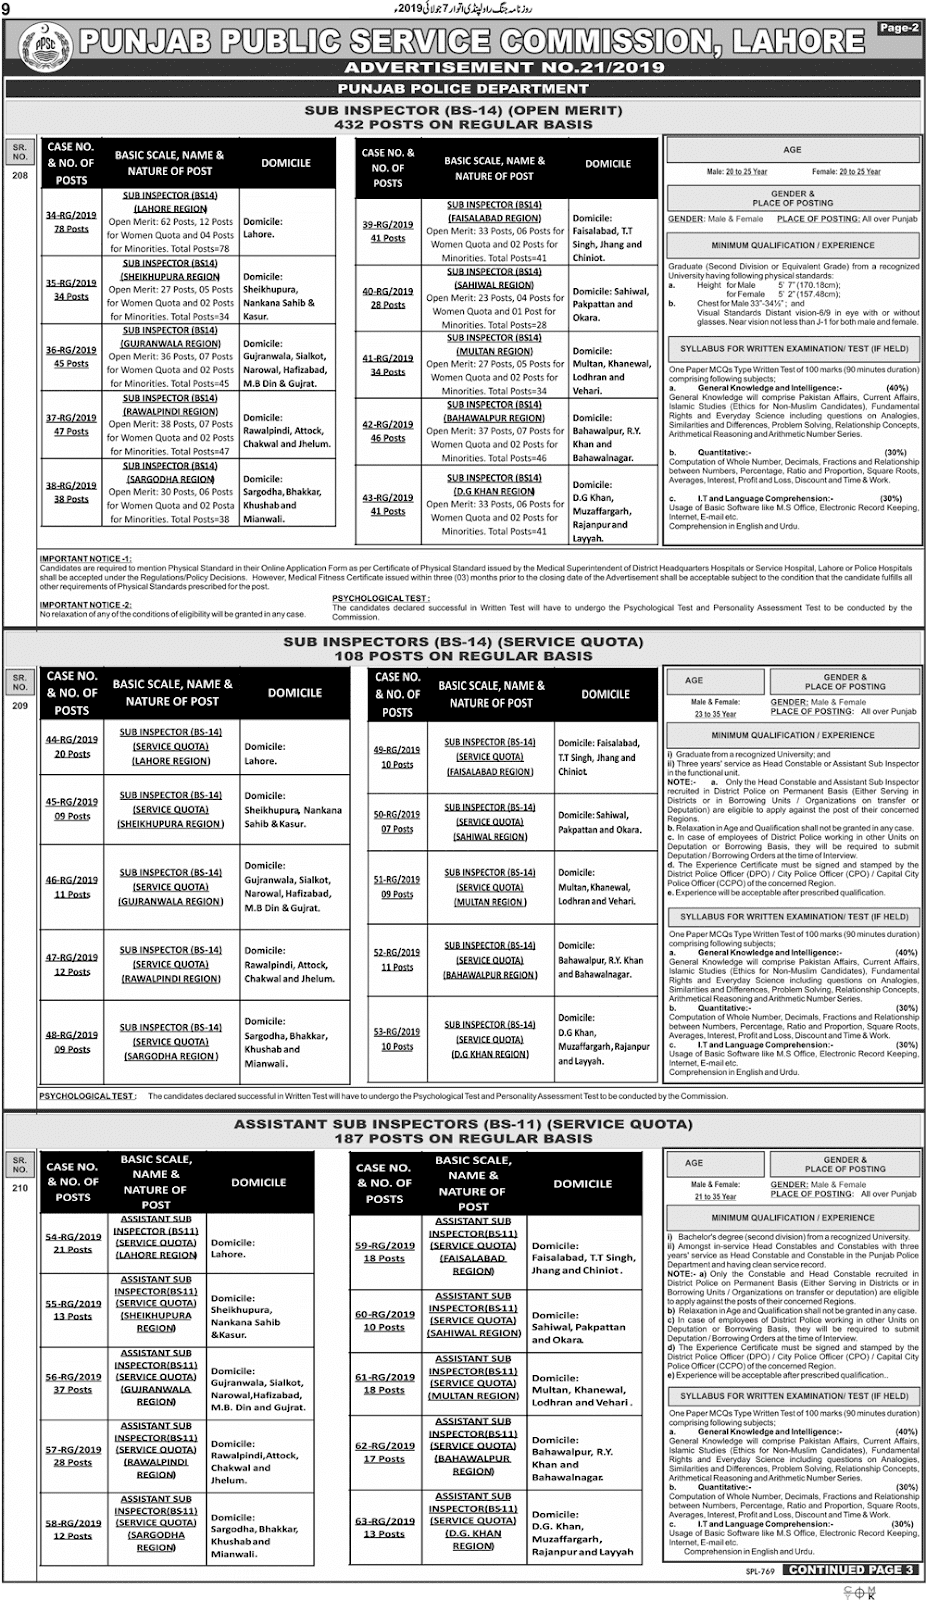 PPSC Advertisement 21/2019 Page No. 2/3